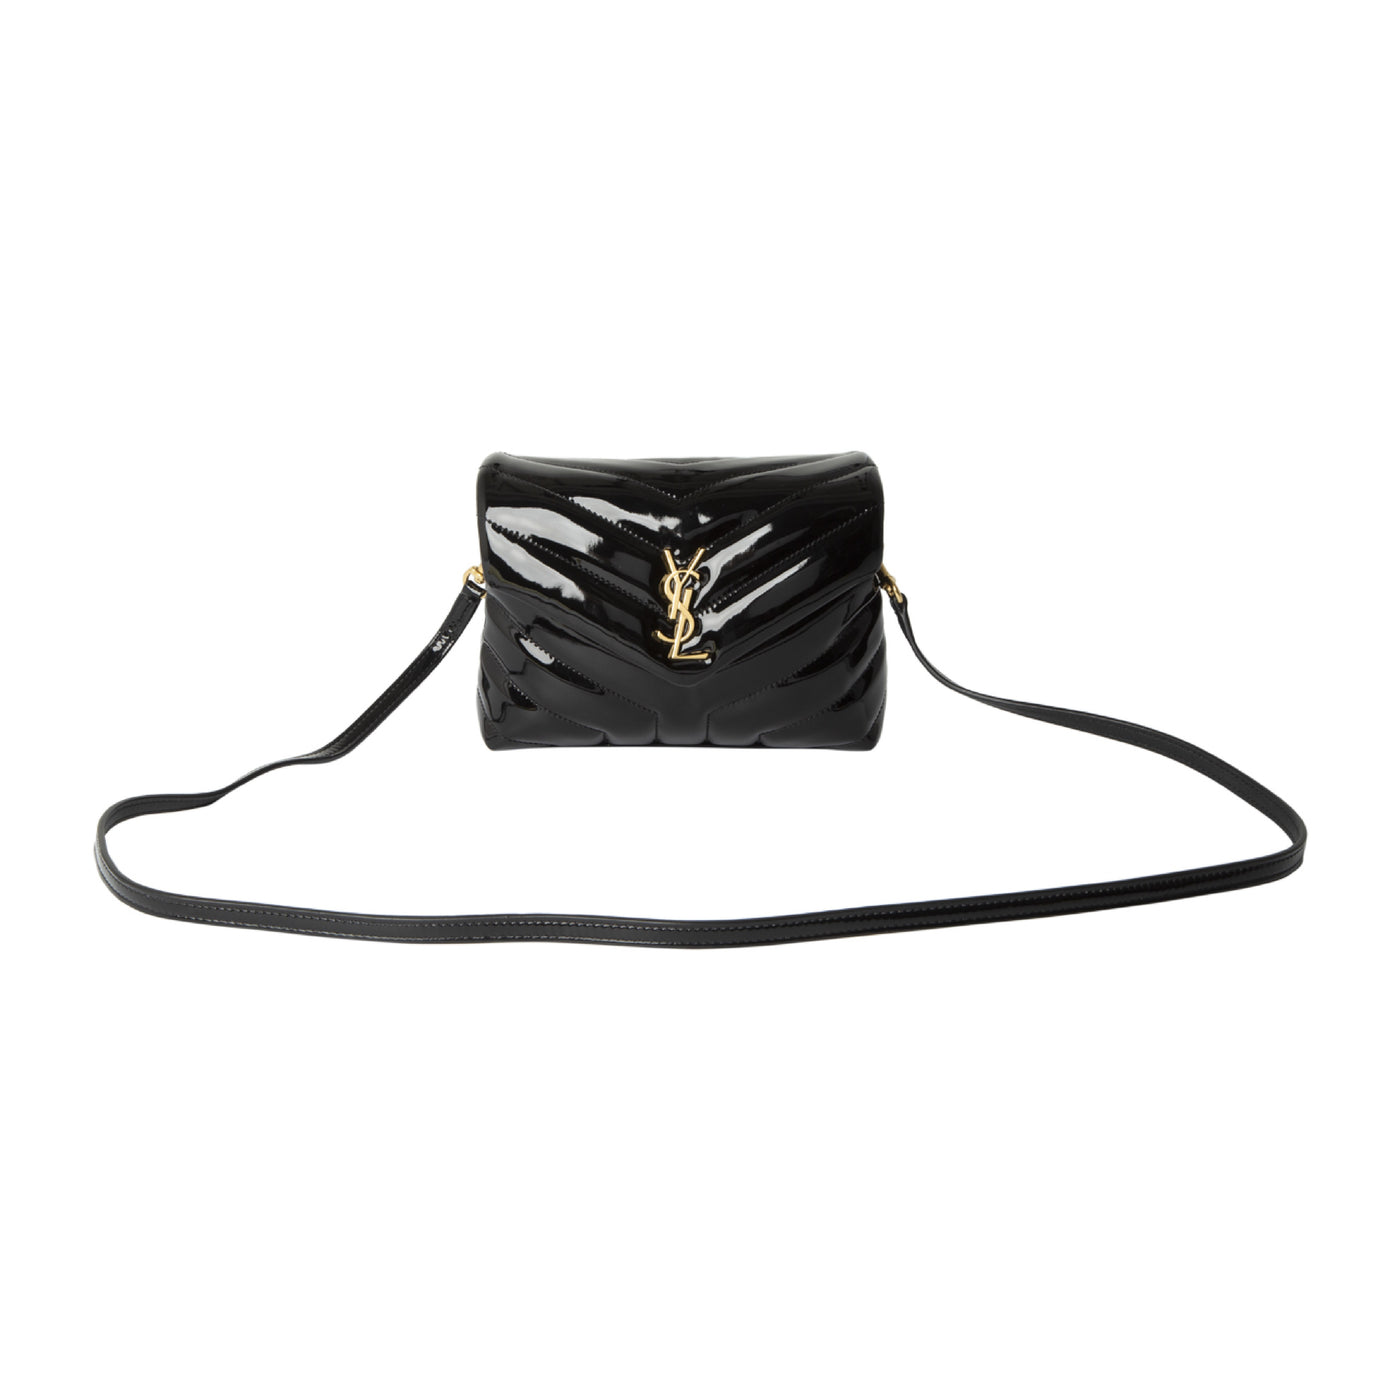 Load image into Gallery viewer, SAINT LAURENT PATENT MINI BAG BLACK